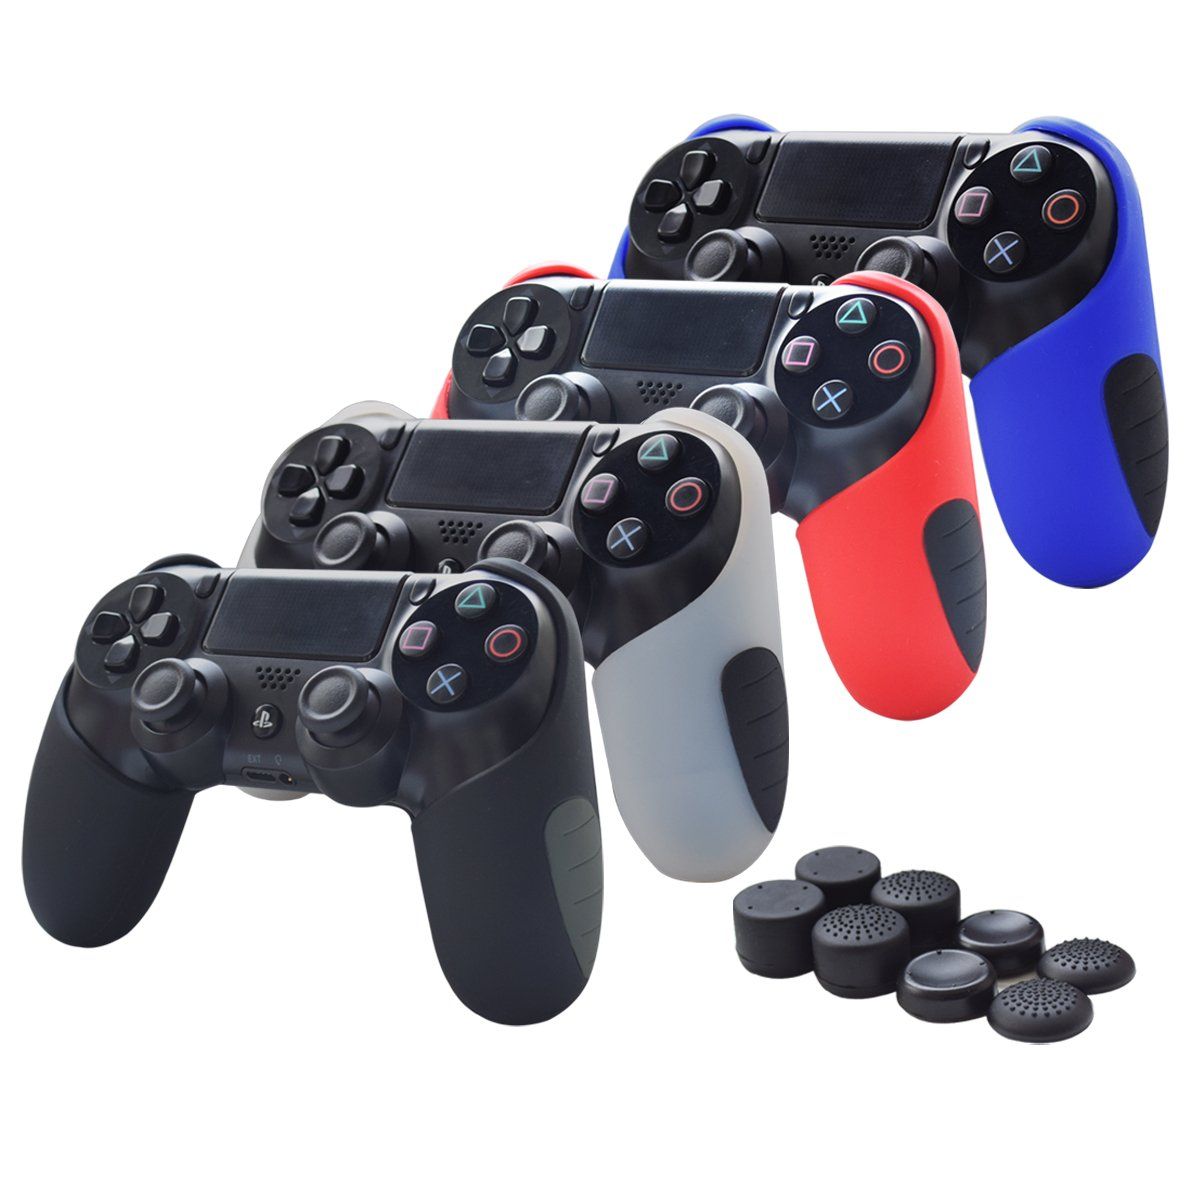 Skin Compatible for PS4 Controller Pandaren Soft Silicone Thicker Half Skin Cover Grip for PS4 /Slim/PRO Controller (Skin X 4 + Thumb Grip X 8)(Black,White,Red,Blule)